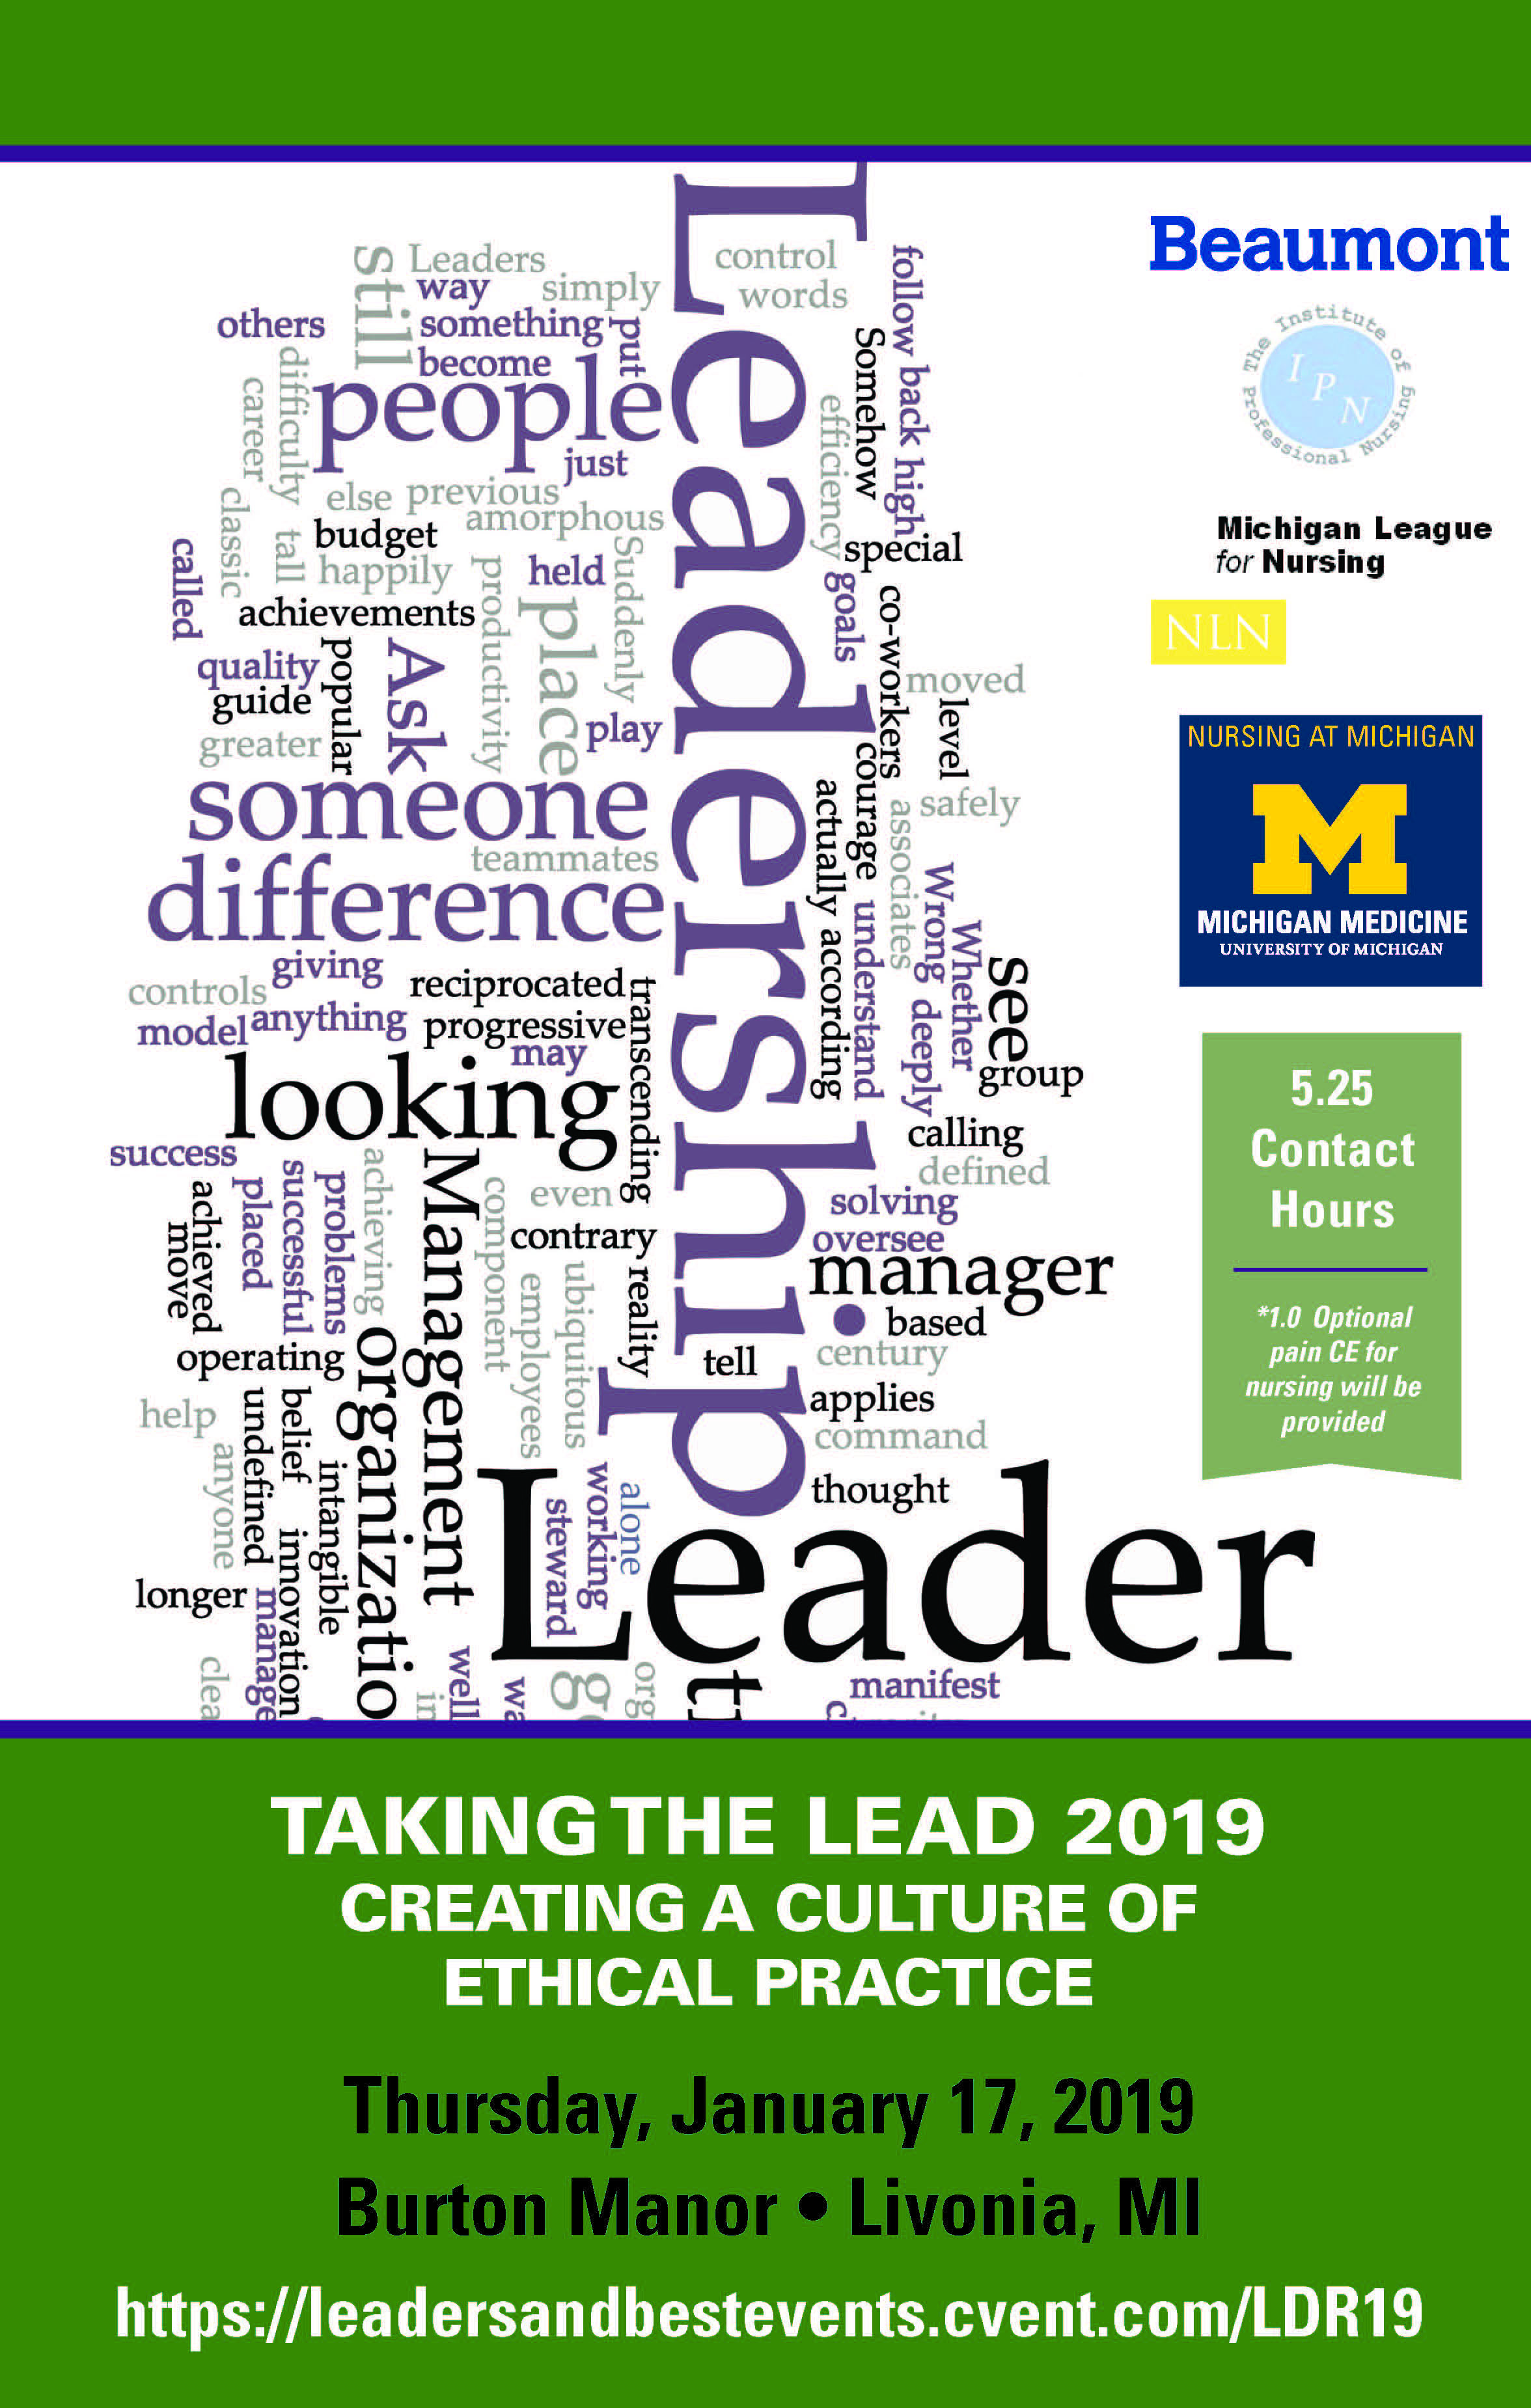 Taking the Lead 2019 Creating a Culture of Ethical Practice